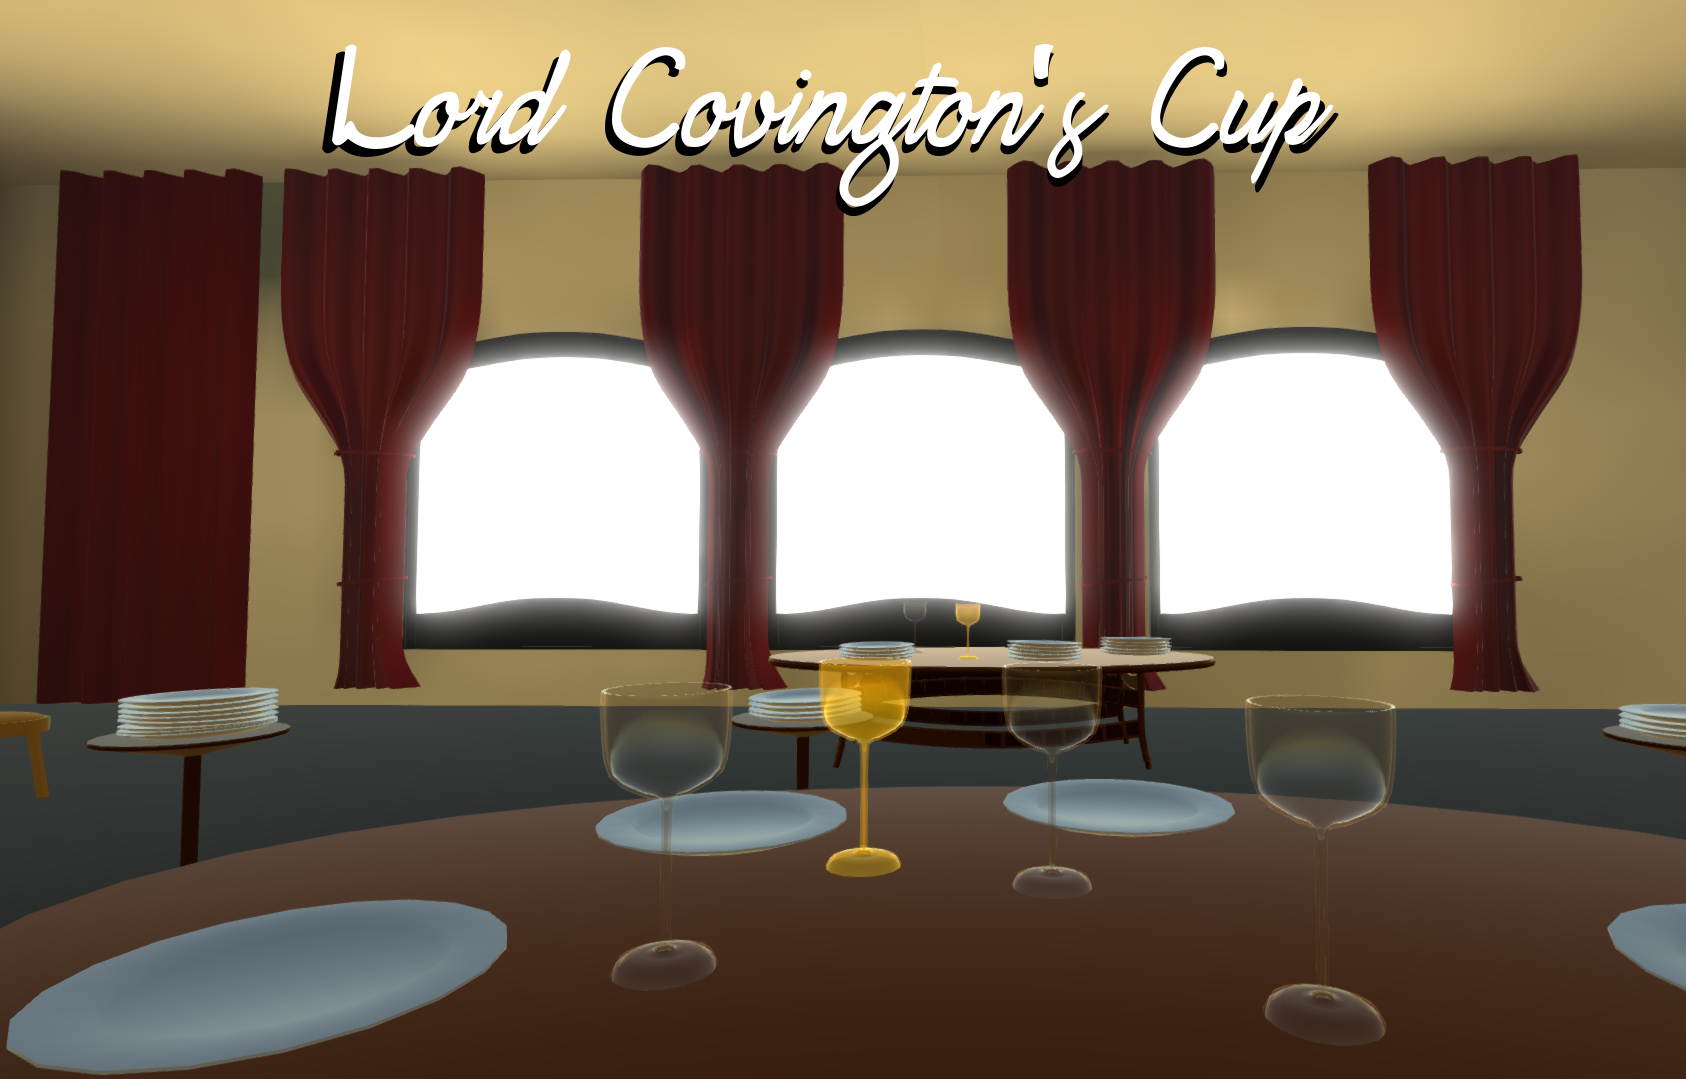 Lord Covington's Cup